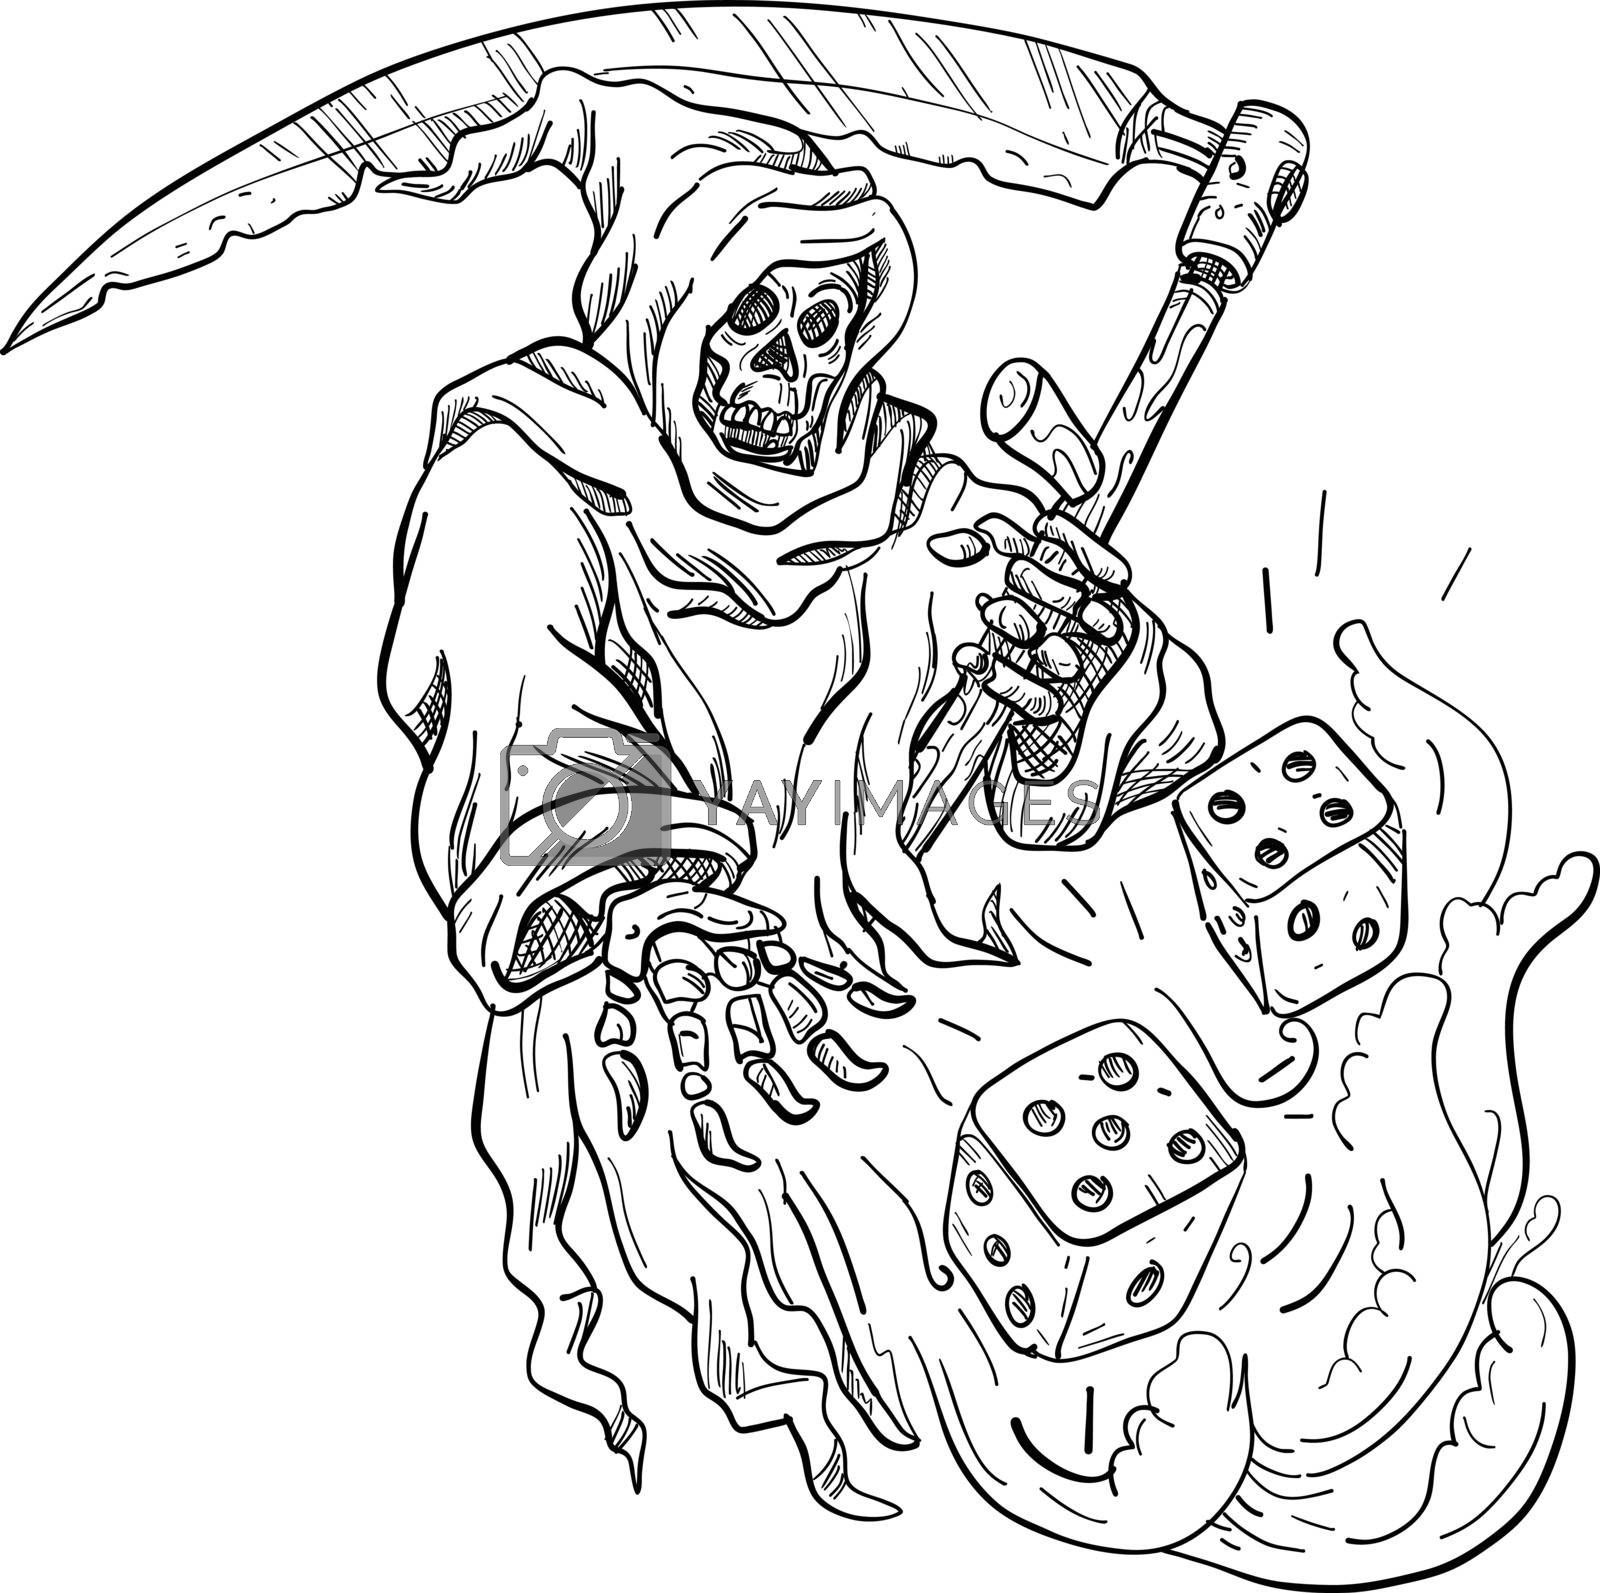 The Grim Reaper Rolling the Dice Drawing Black and White by patrimonio